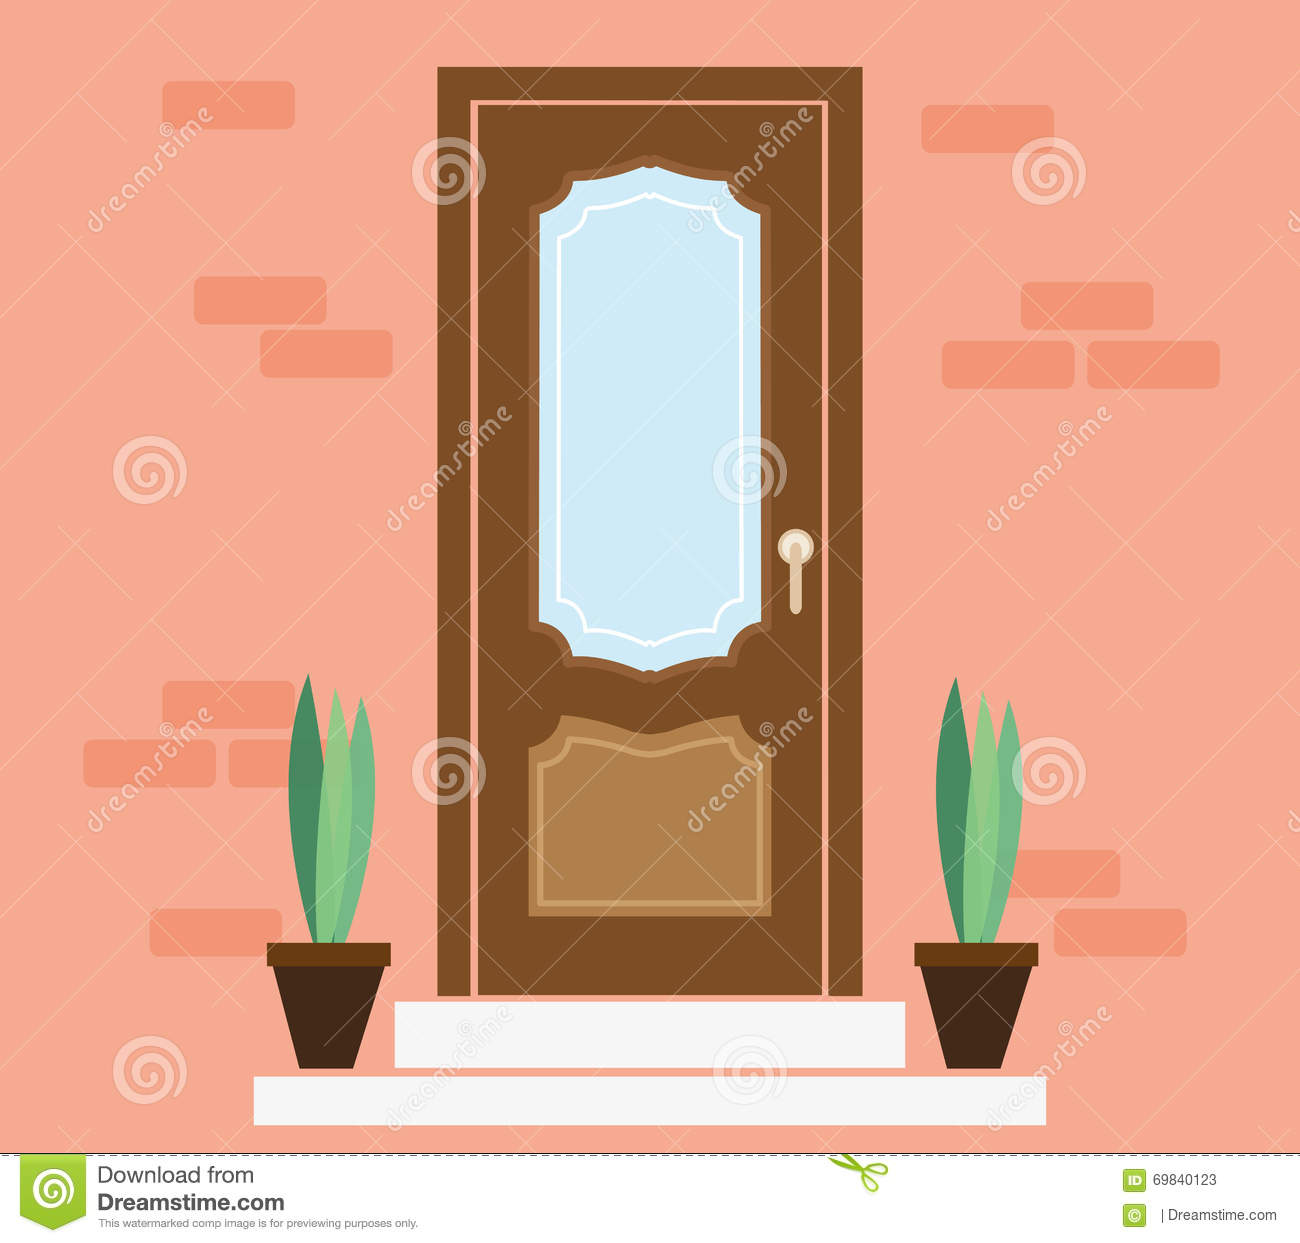 Front door clipart - Door Entrance Exterior Front